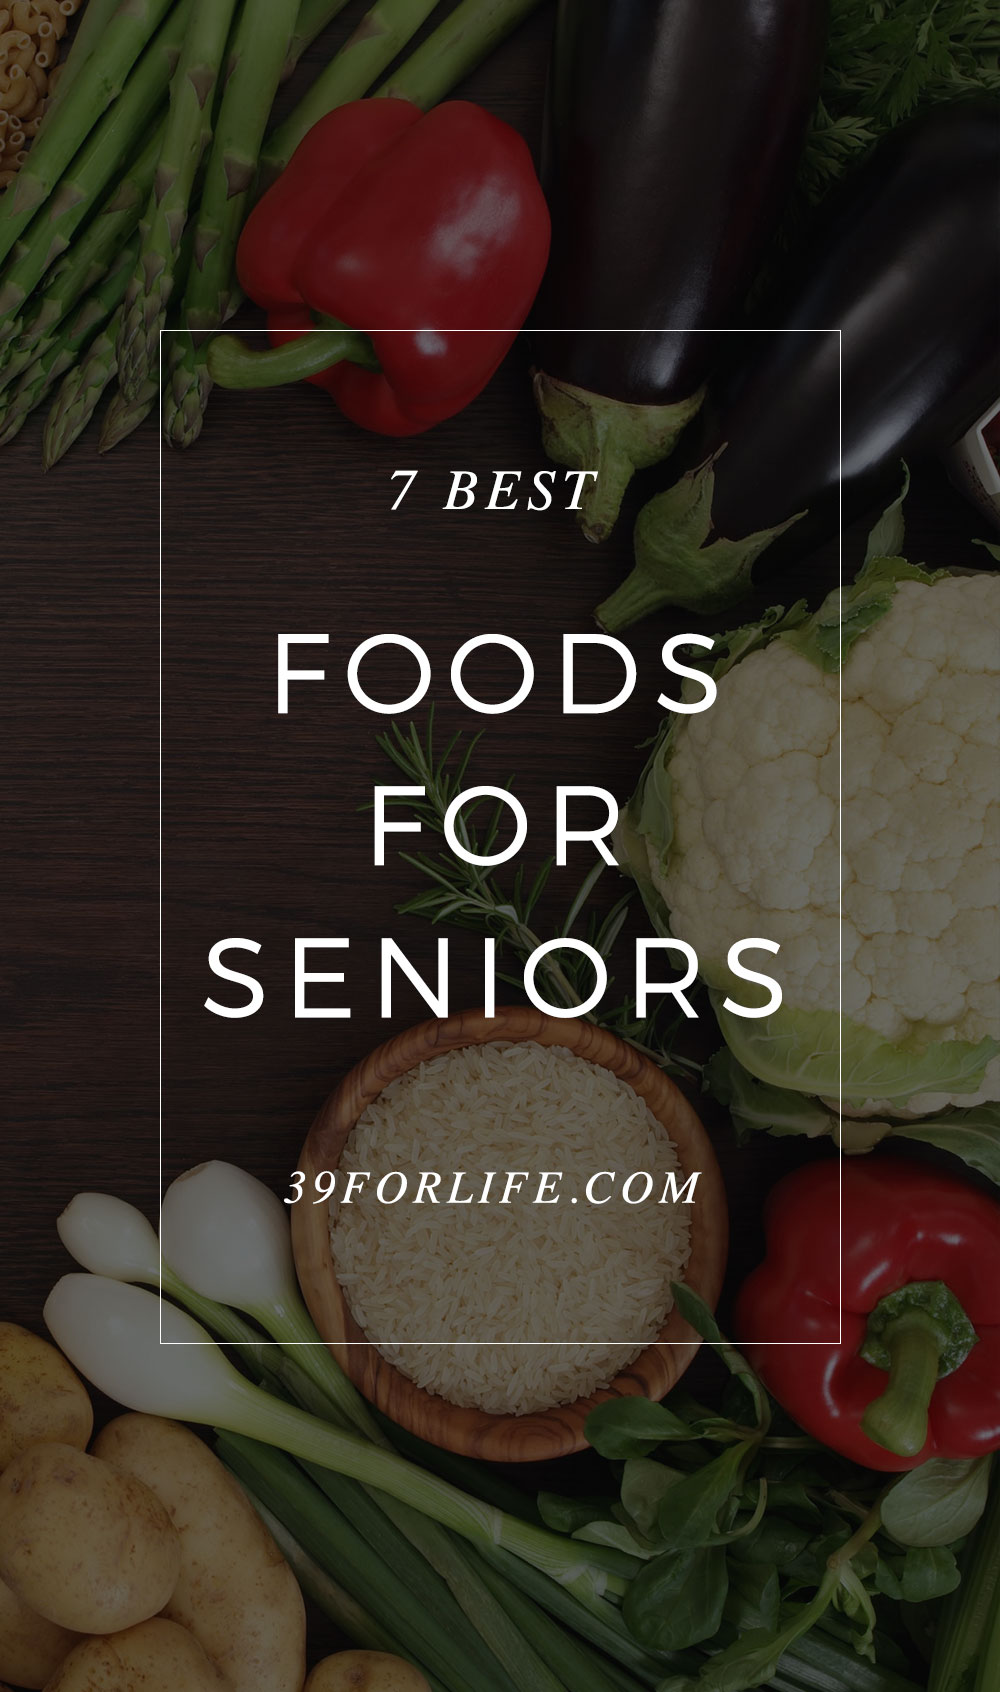 Aging brings new health complications and considerations. Here are seven foods that are especially nutritious for aging adults.